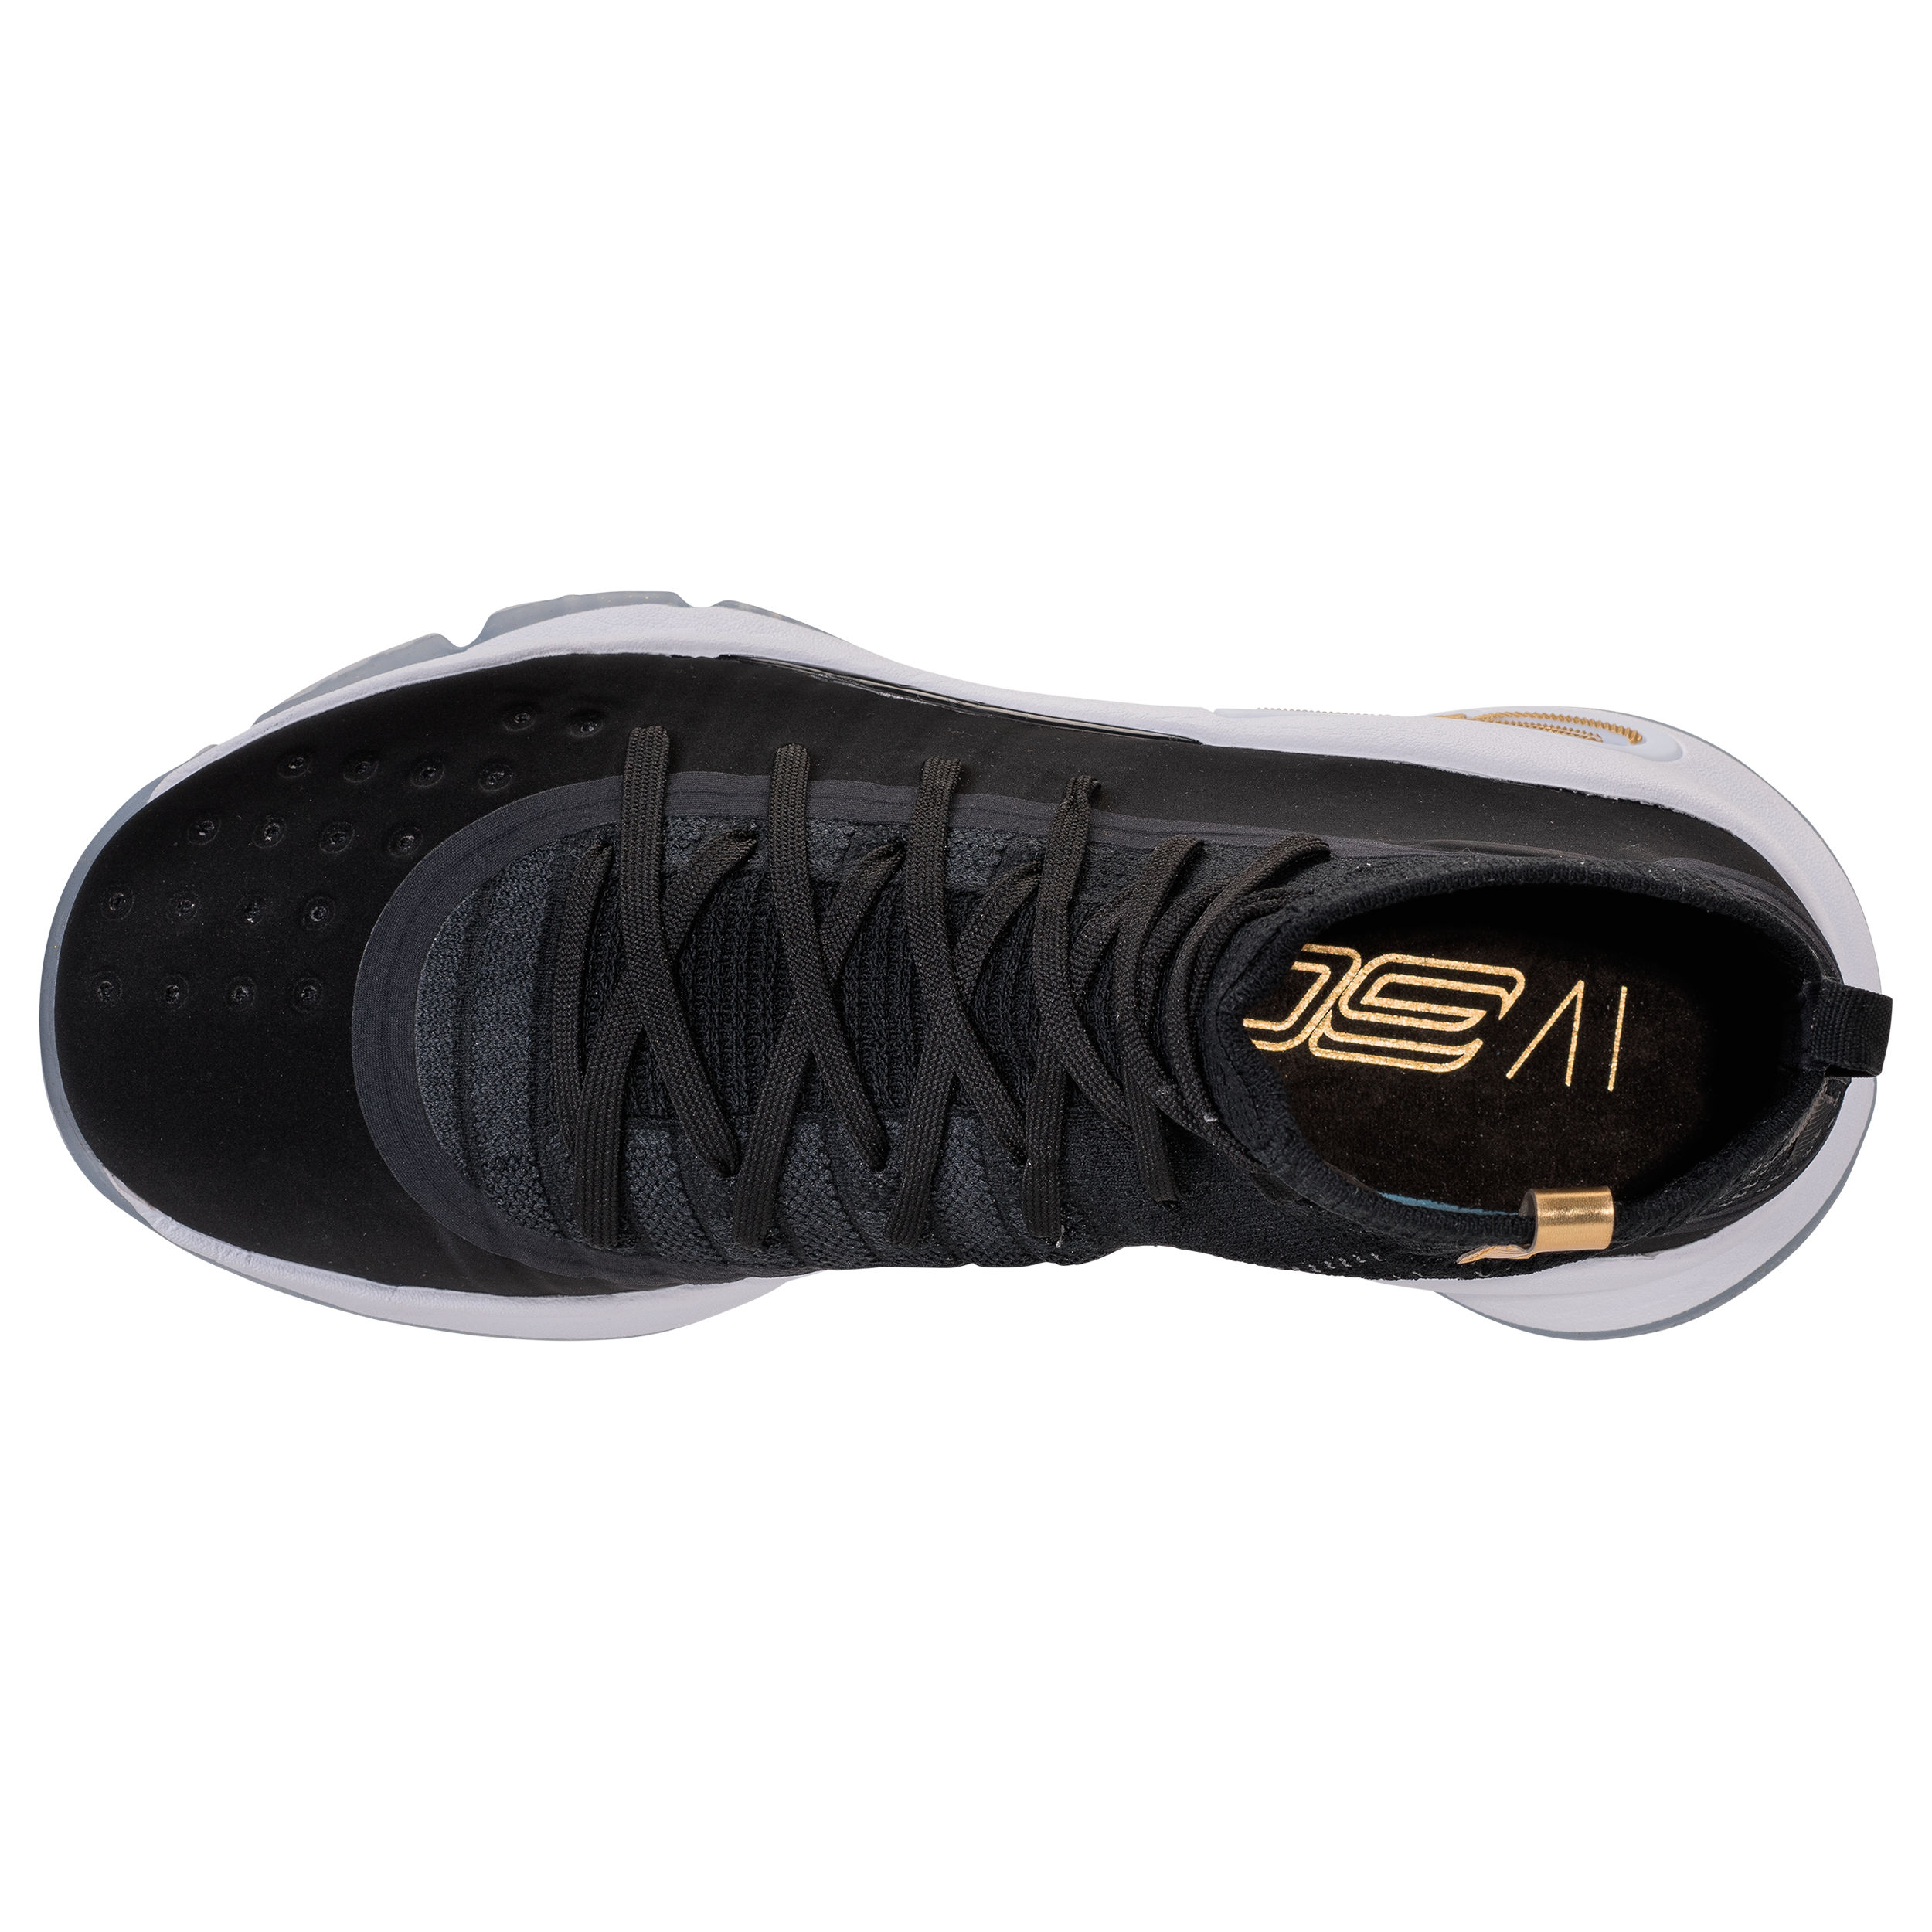 7341938c4920 Under armour curry 4 black gold 5 - WearTesters